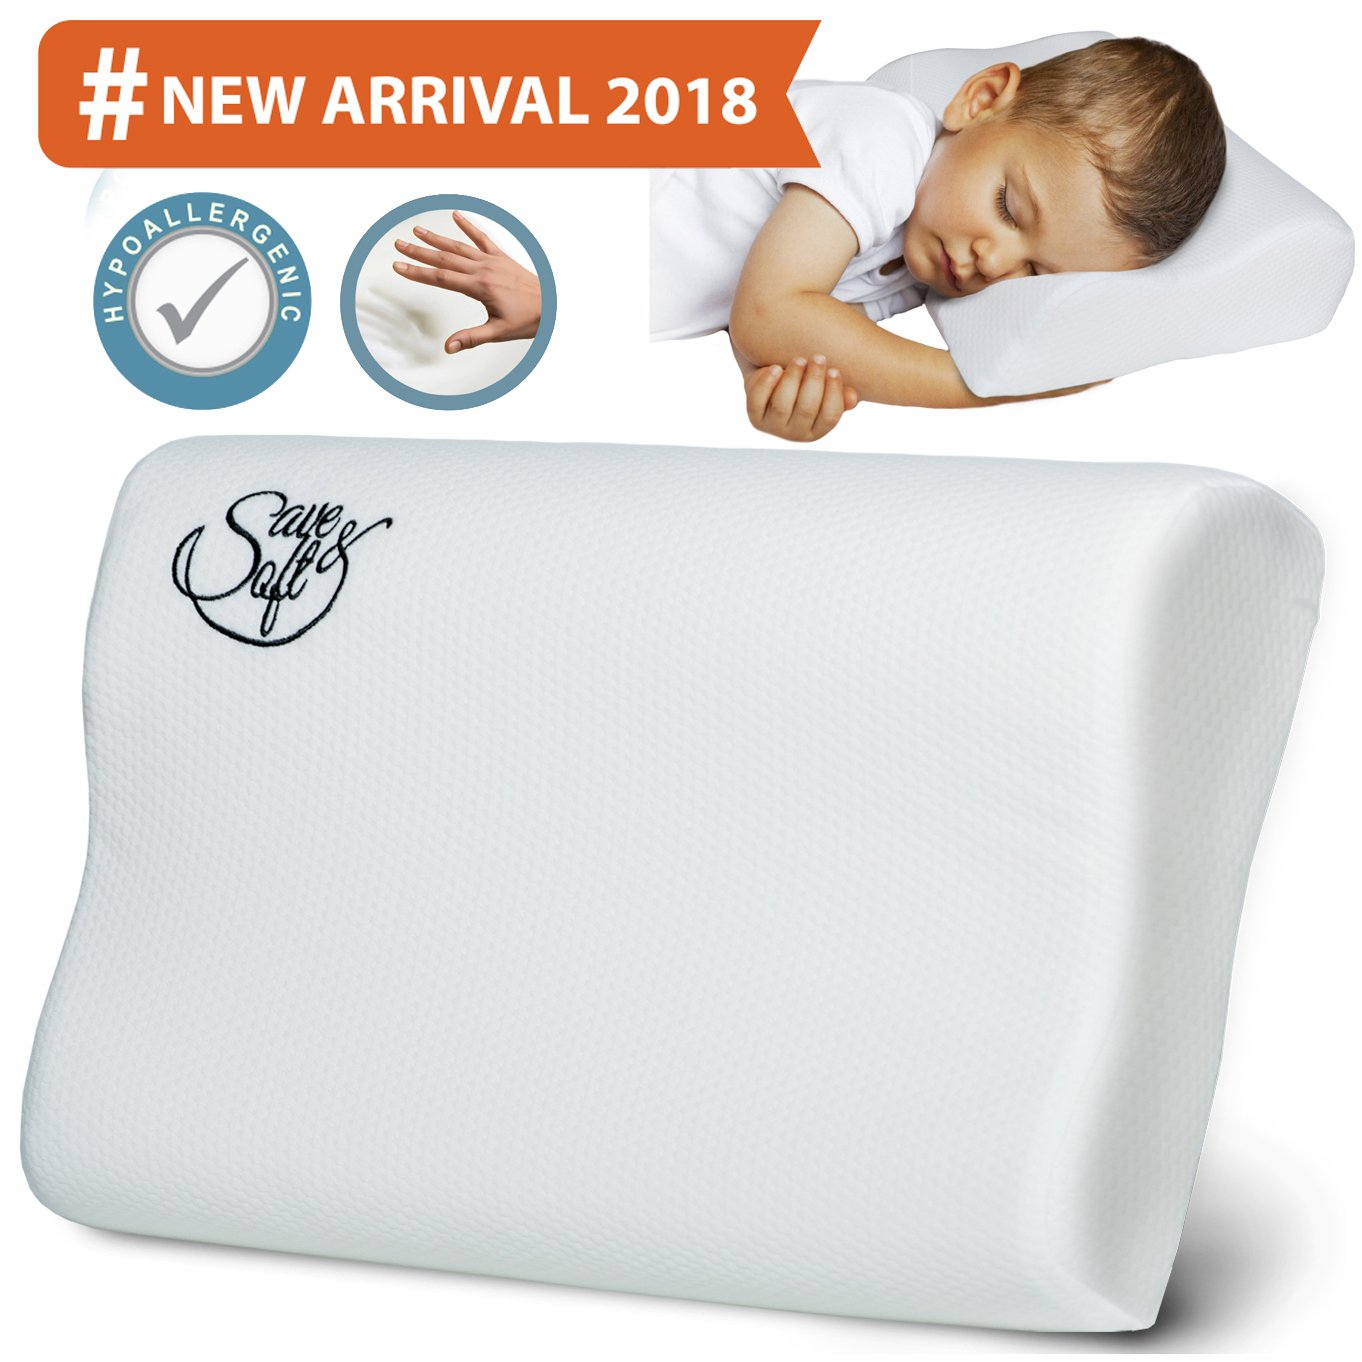 Memory Foam Pillow - Comfortable Cooling Pillow Neck Pain - Cervical Support Pillow Back Stomach Side Sleepers - Bed Orthopedic Sleeping Pillow for Women Kids